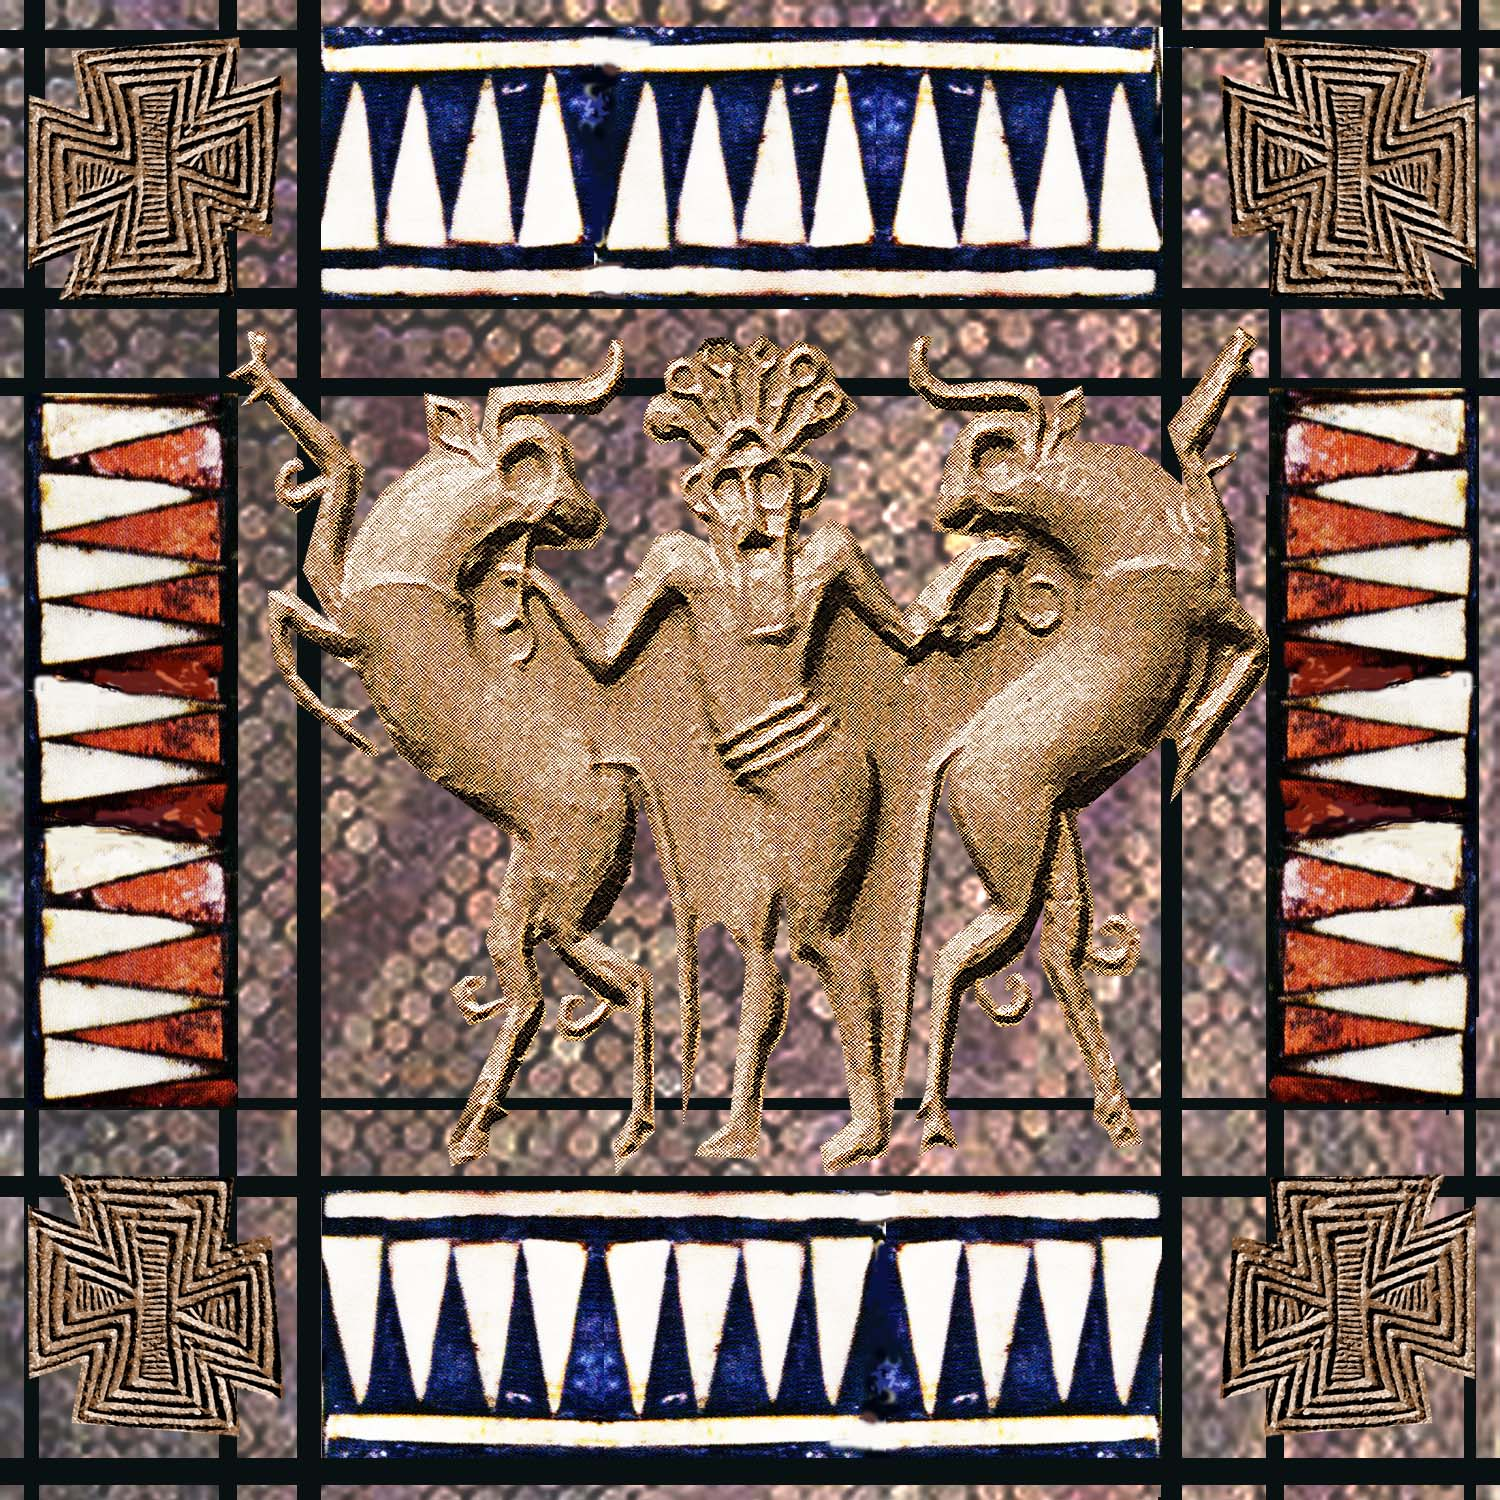 mesopotamian art and architecture most mesopotamian art and